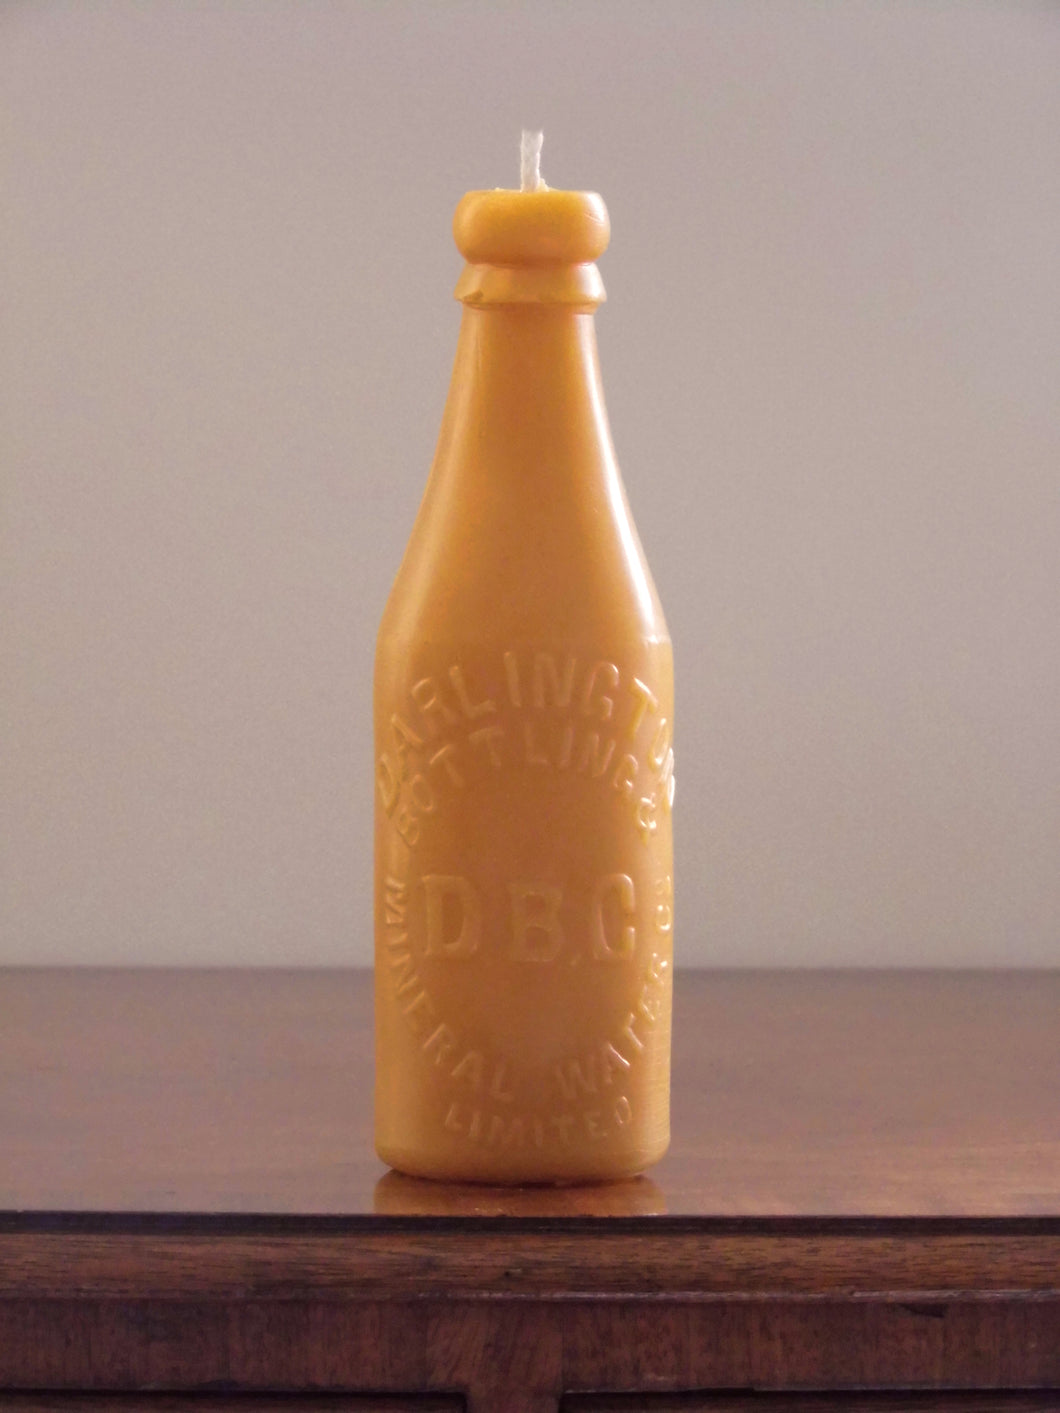 beeswax candle in the shape of an antique Darlington bottle